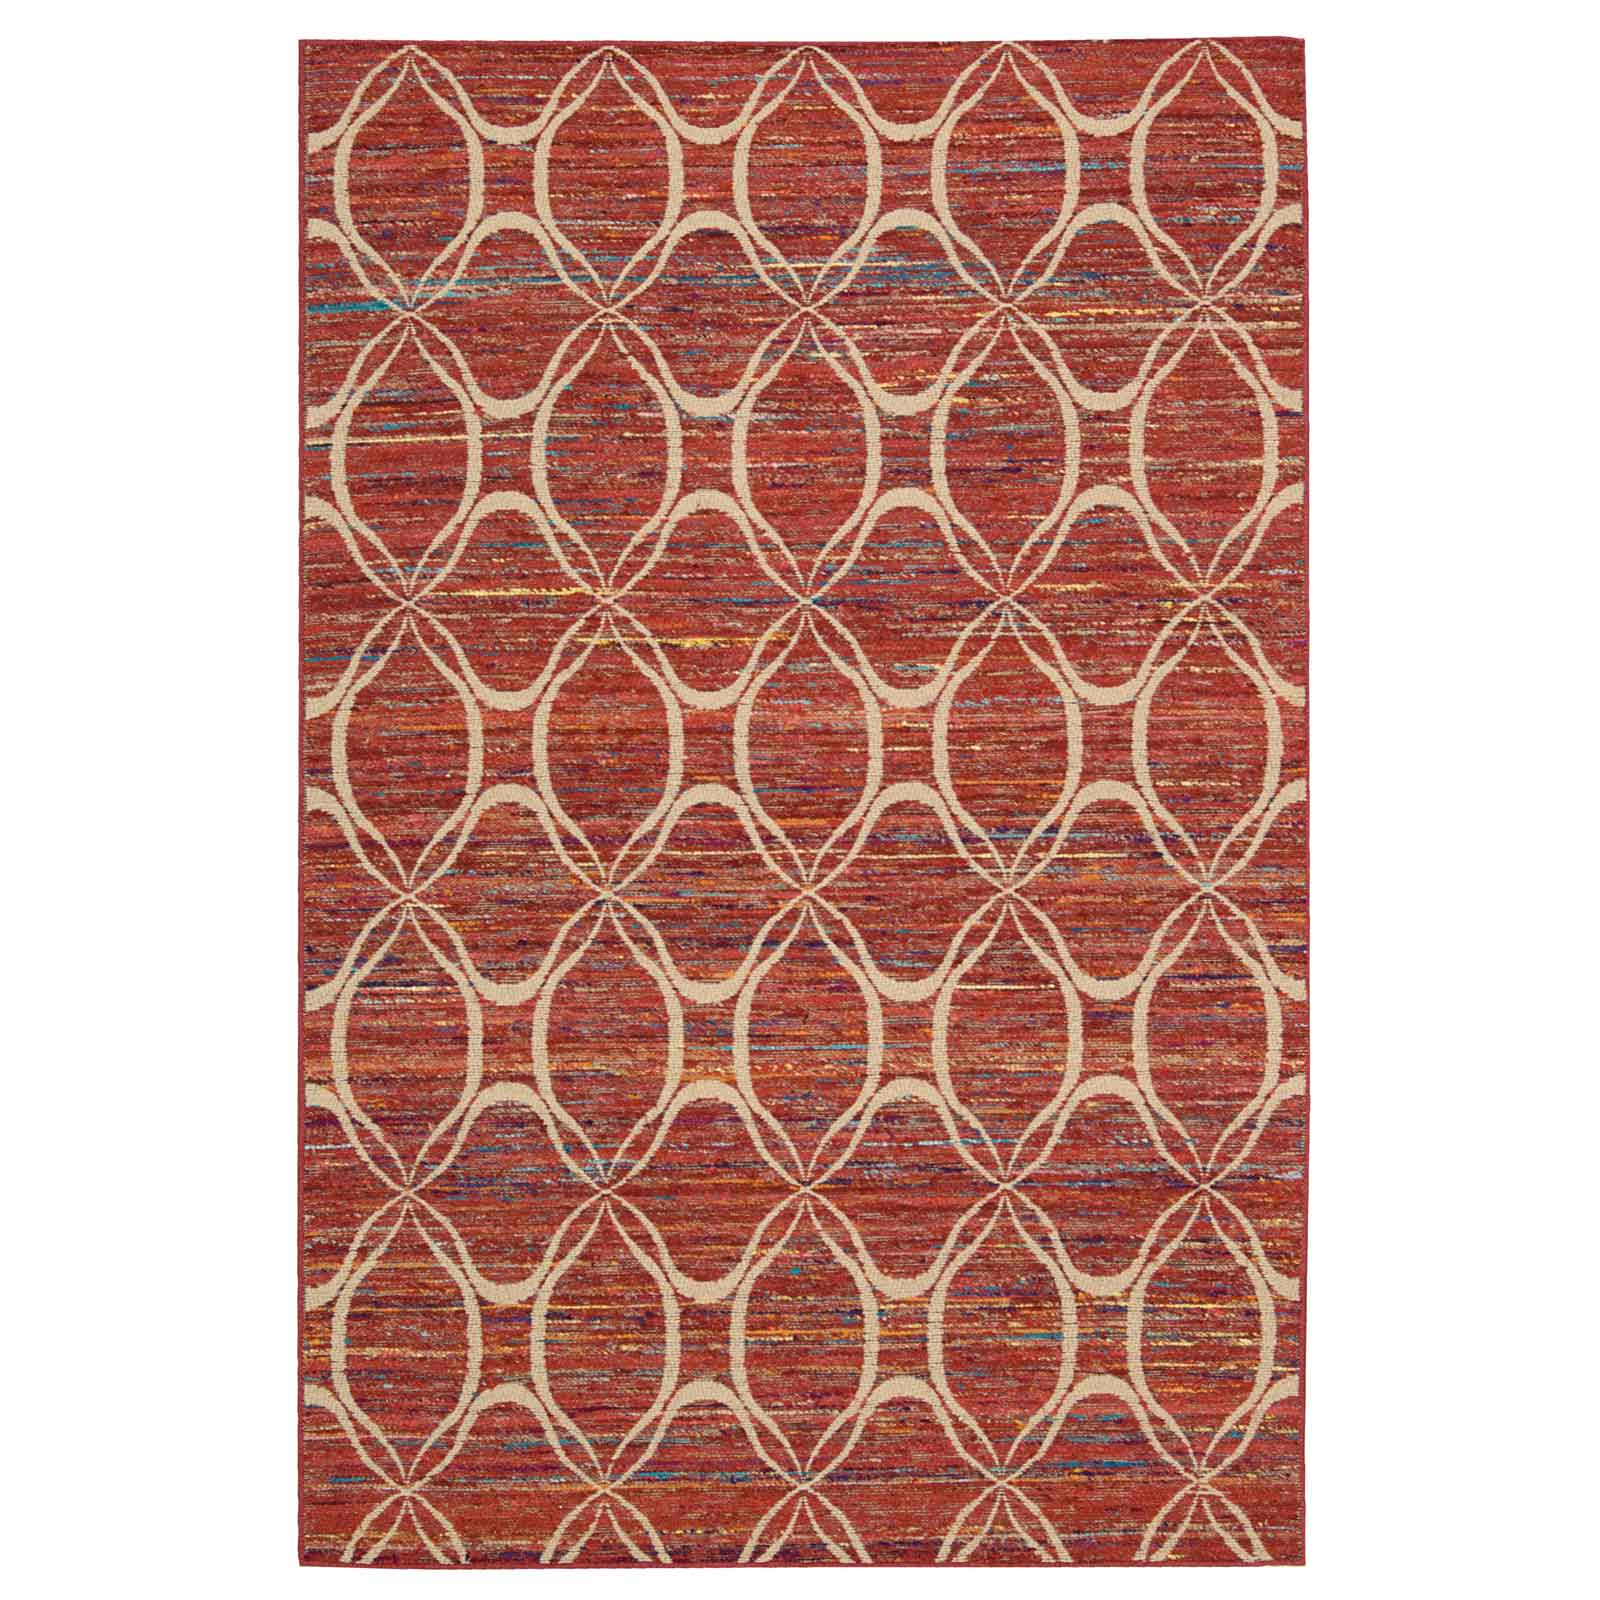 Spectrum Rugs SPE03 in Paprika